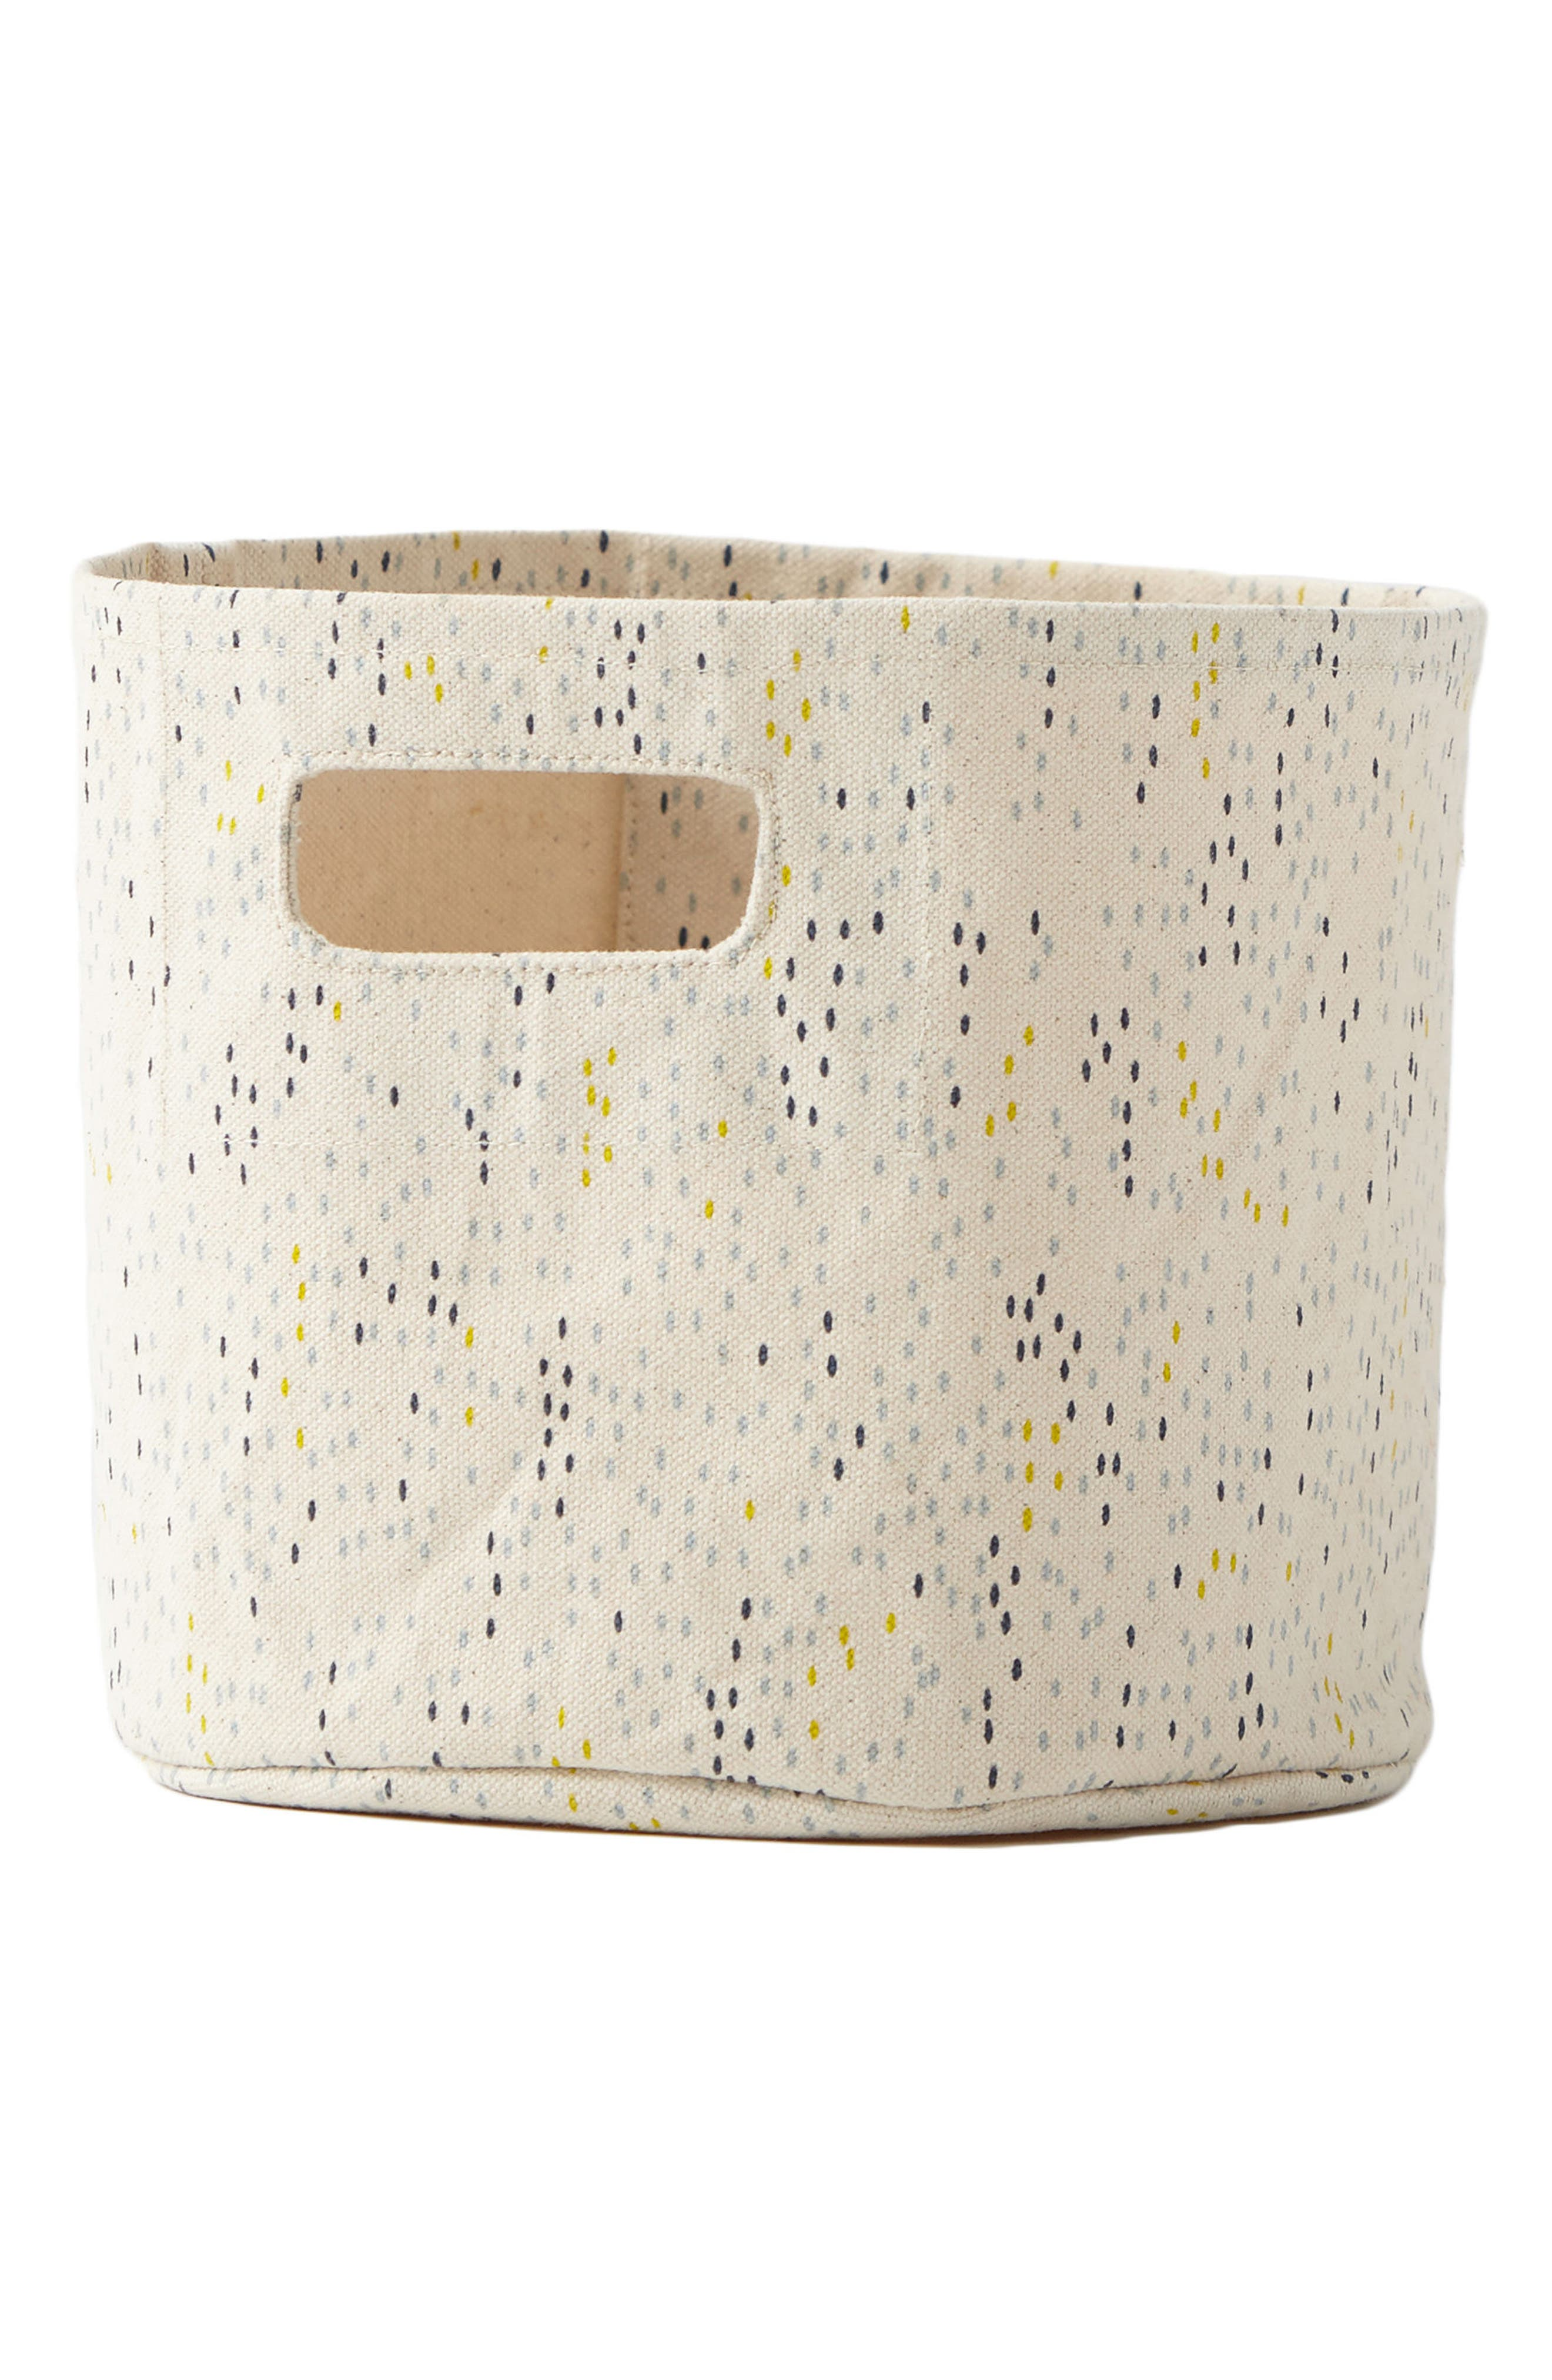 Showers Mini Canvas Bin,                         Main,                         color, 450